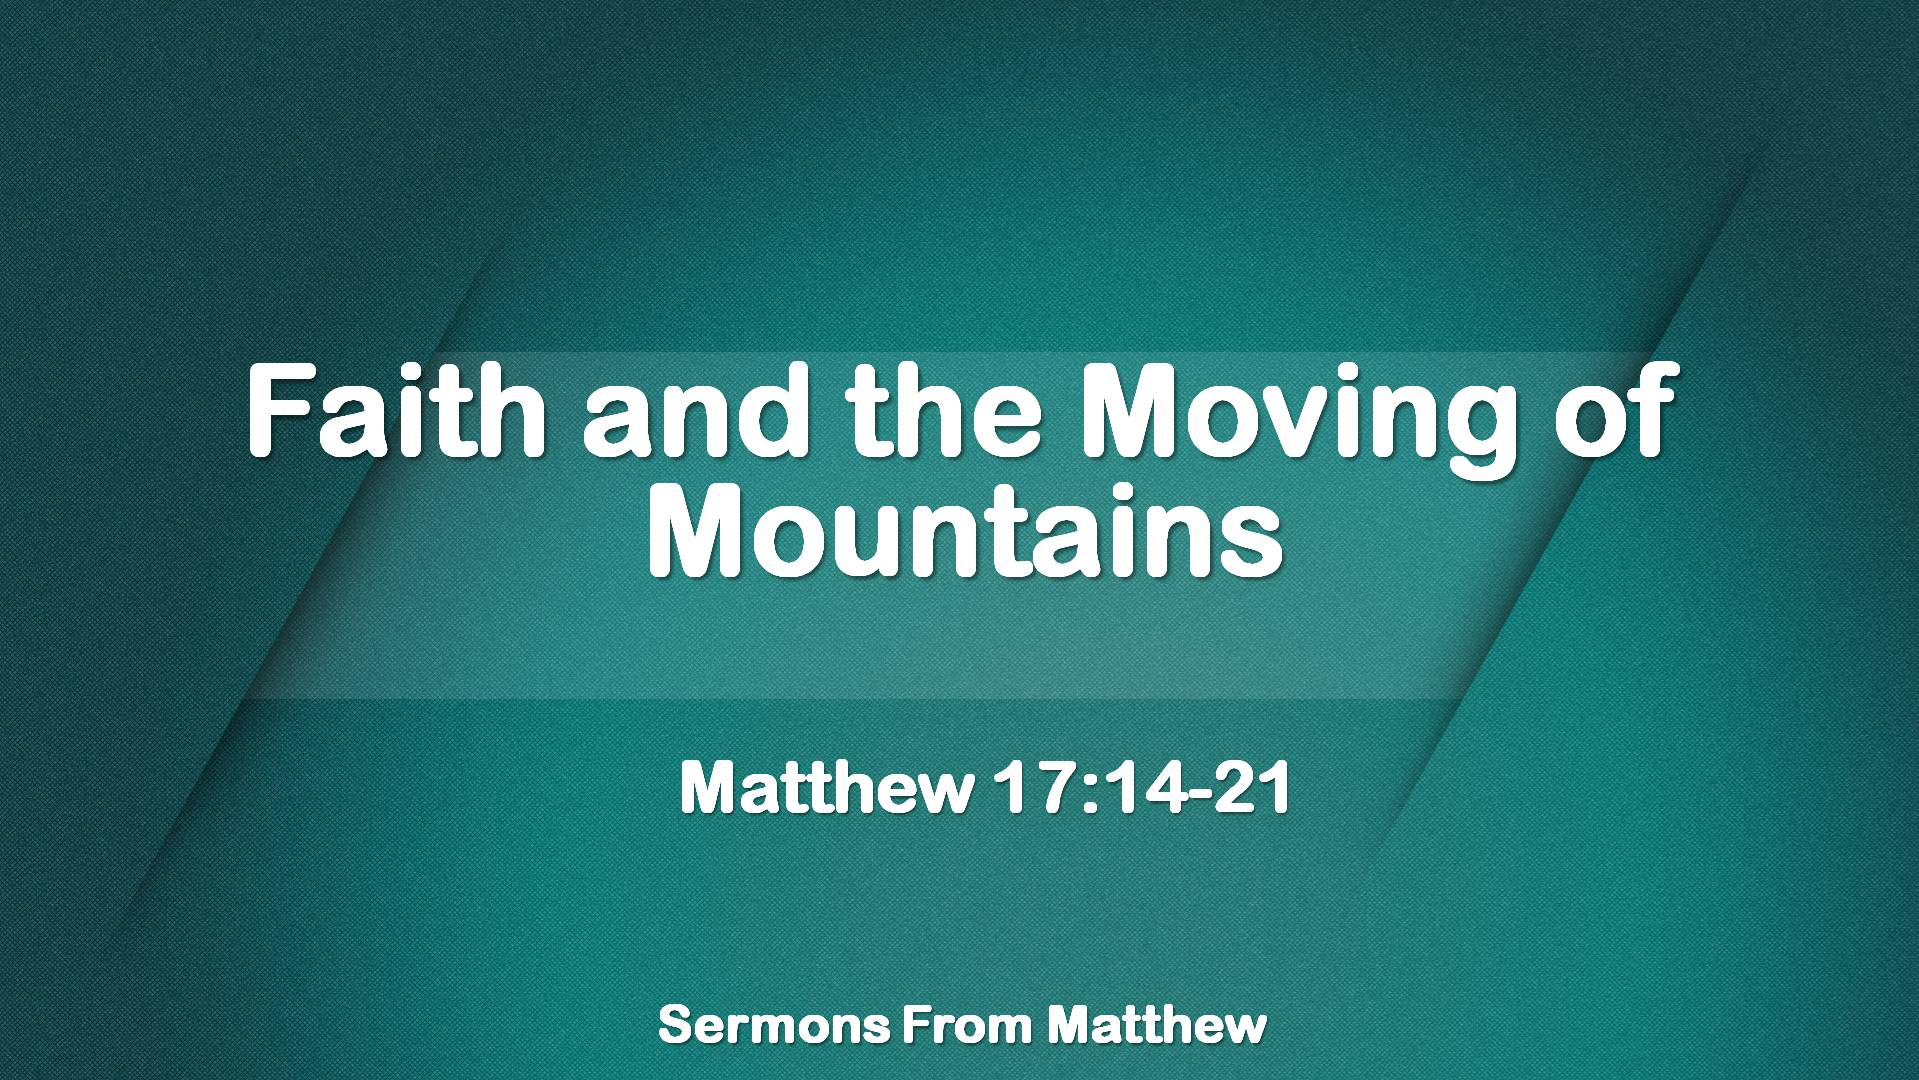 Faith and the Moving of Mountains